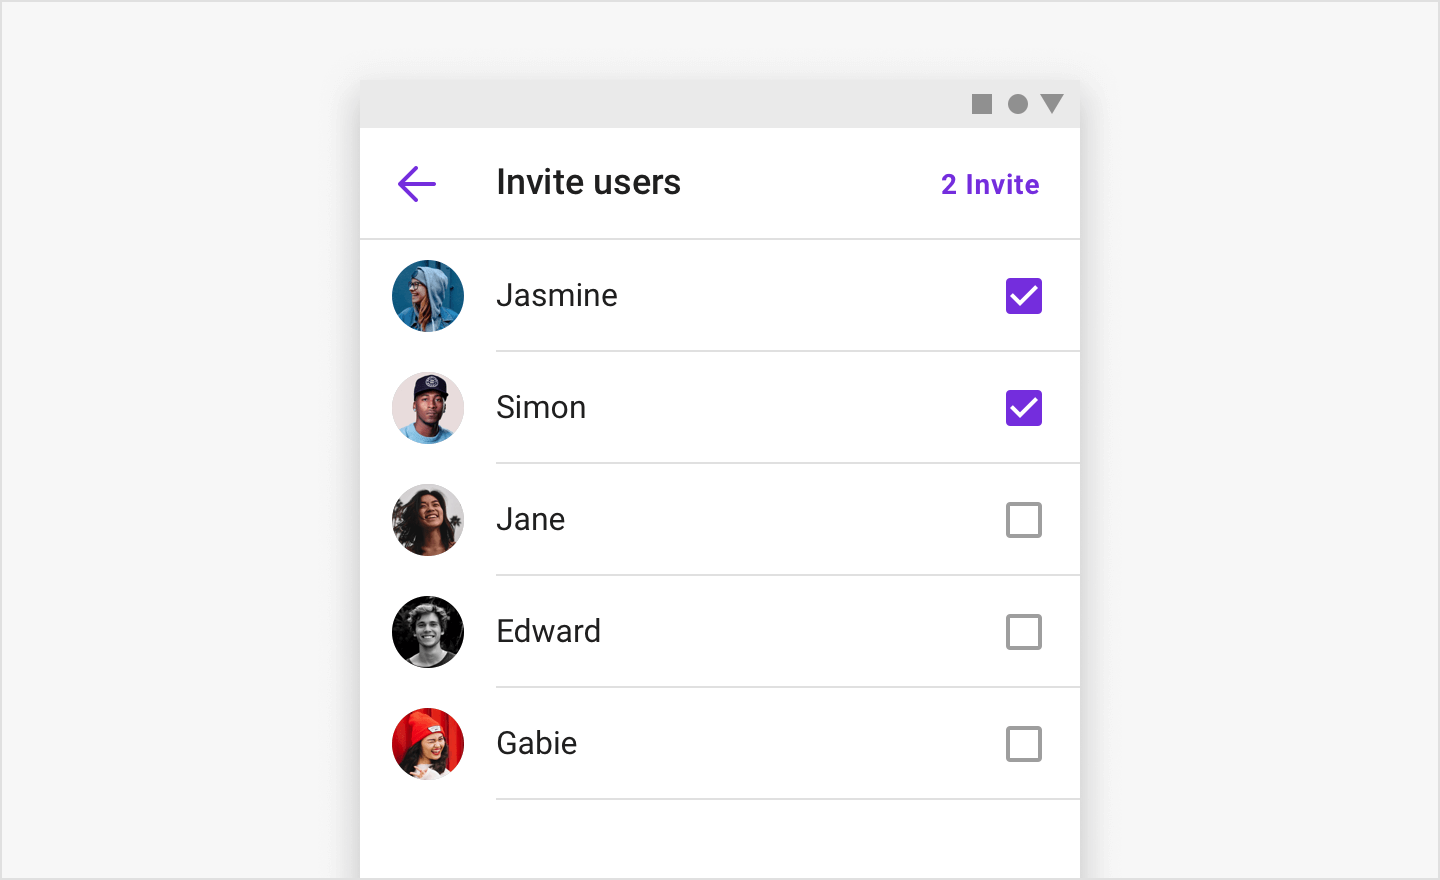 Image|InviteChannelFragment, which let you list users to invite to a group channel in view.